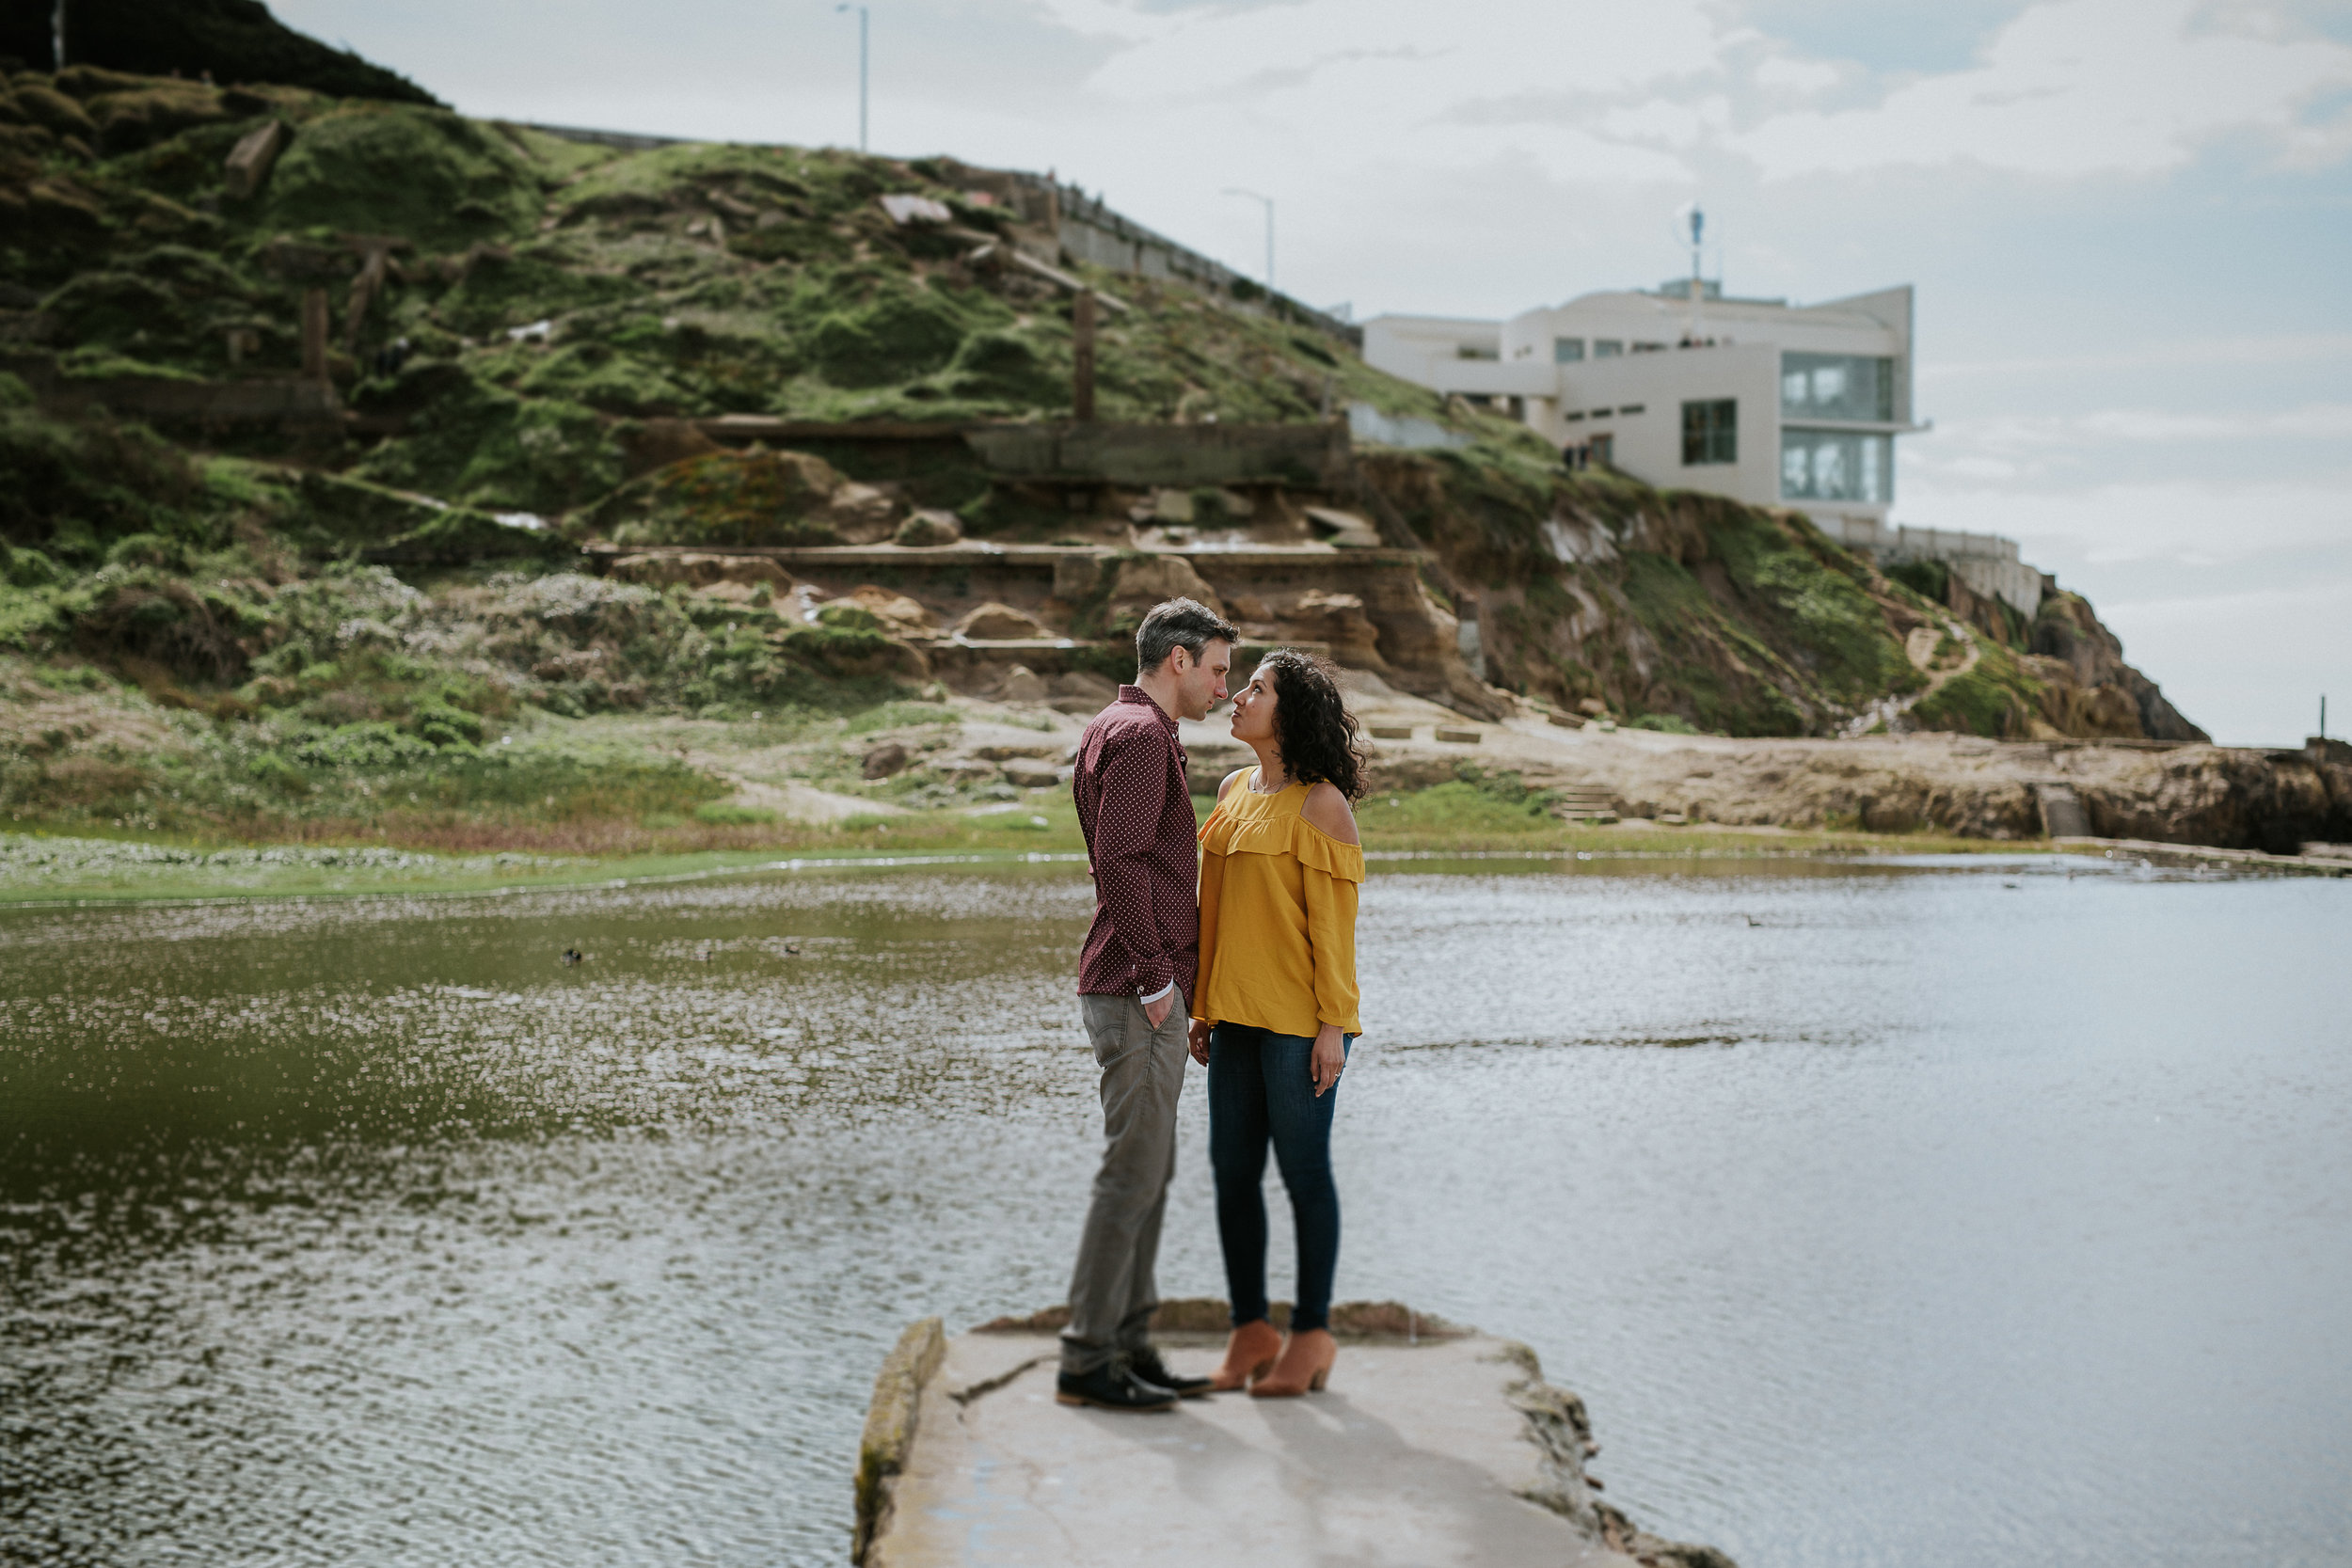 Ada and dave - san-francisco-engagement-golden-gate-park-sutro-baths-89.jpg